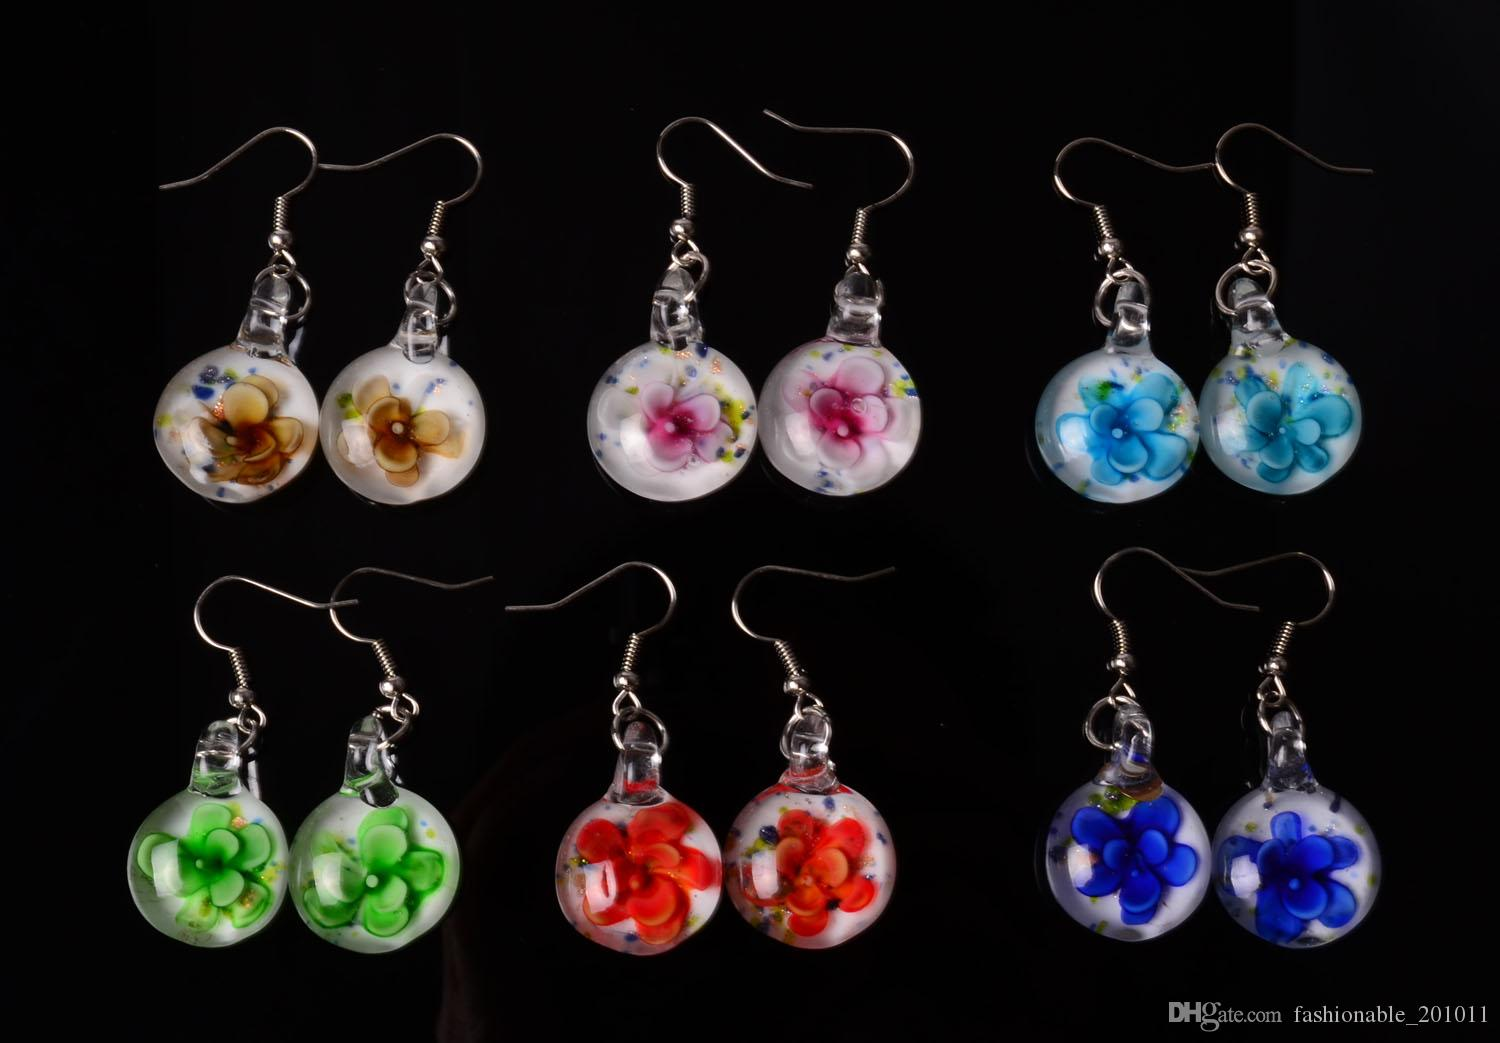 Earrings Lampwork Glass Round Sterling Silver Earrings Making Things Convenient For The People Jewelry & Watches